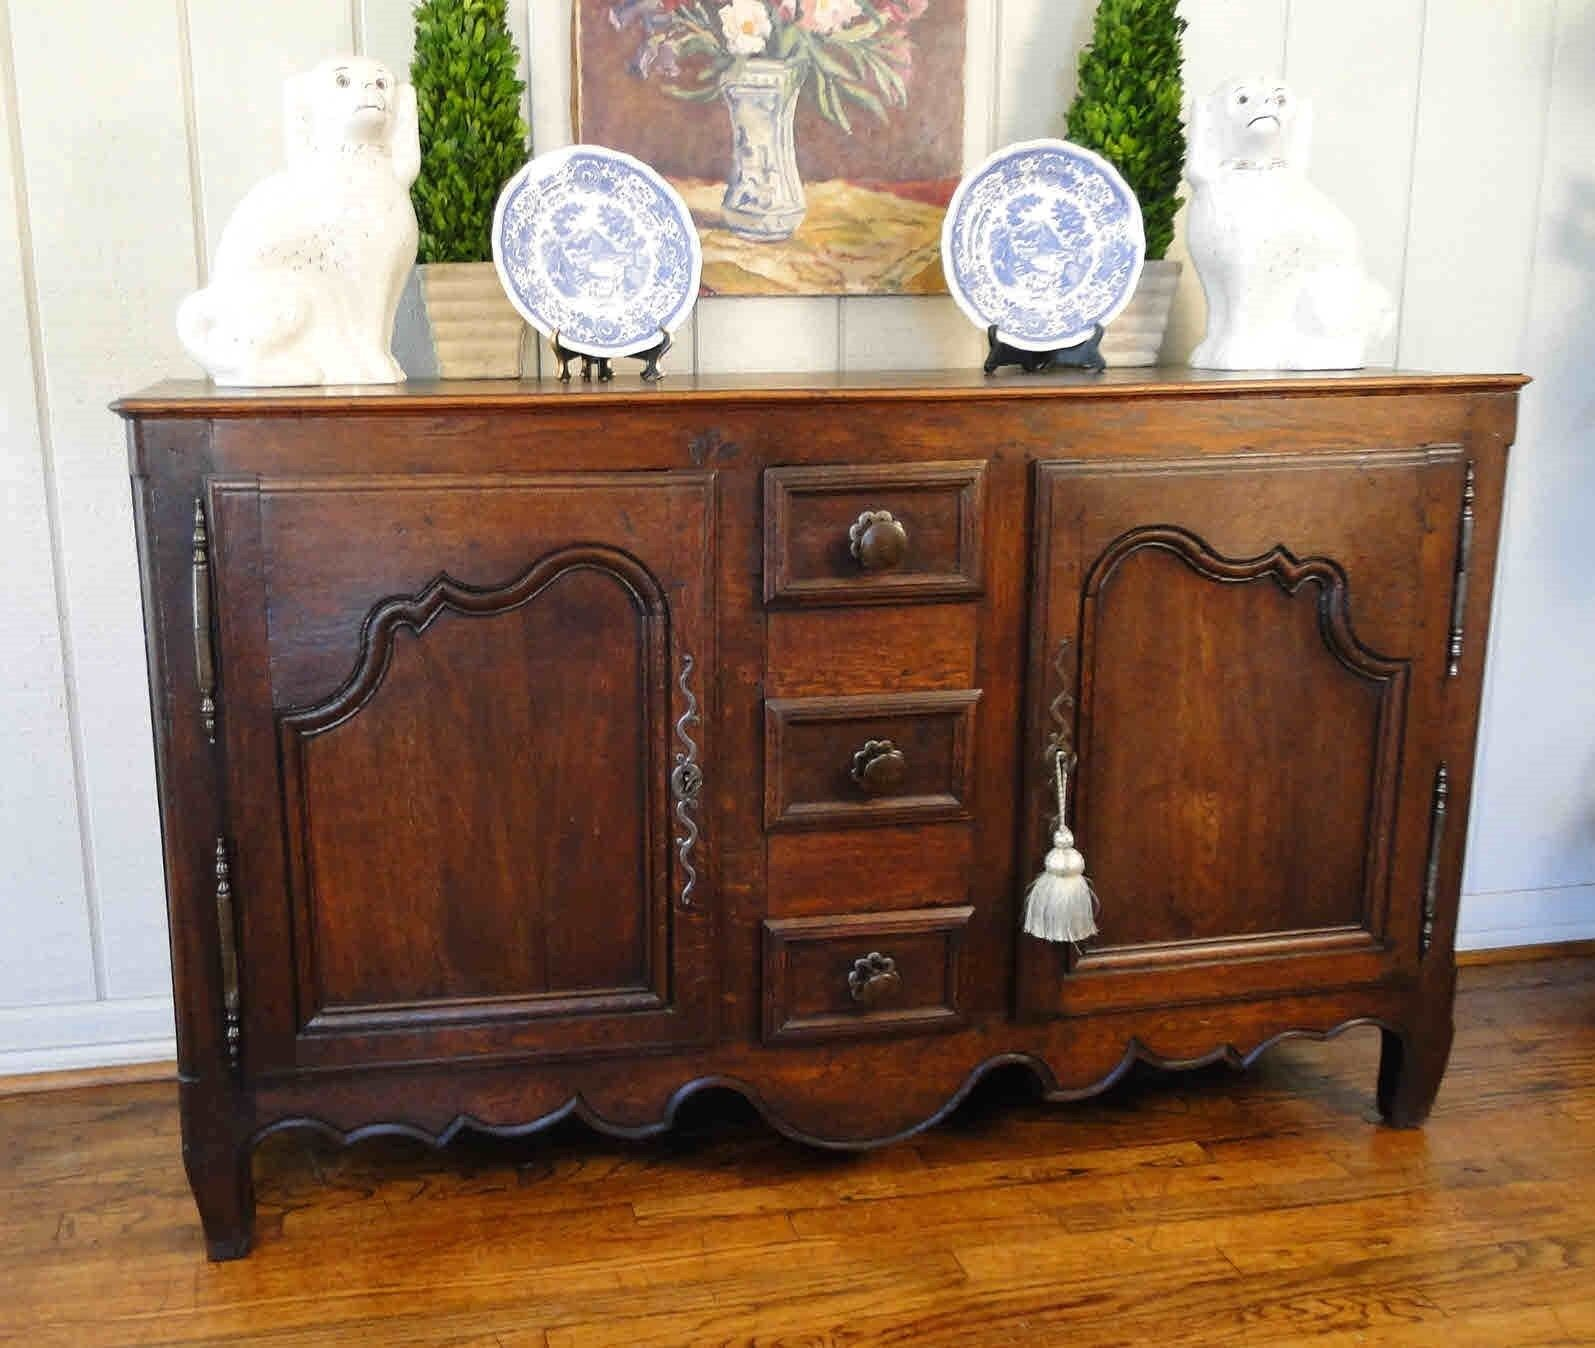 Country French Buffet Sideboard Server Provence c1890's Oak Original Hardware